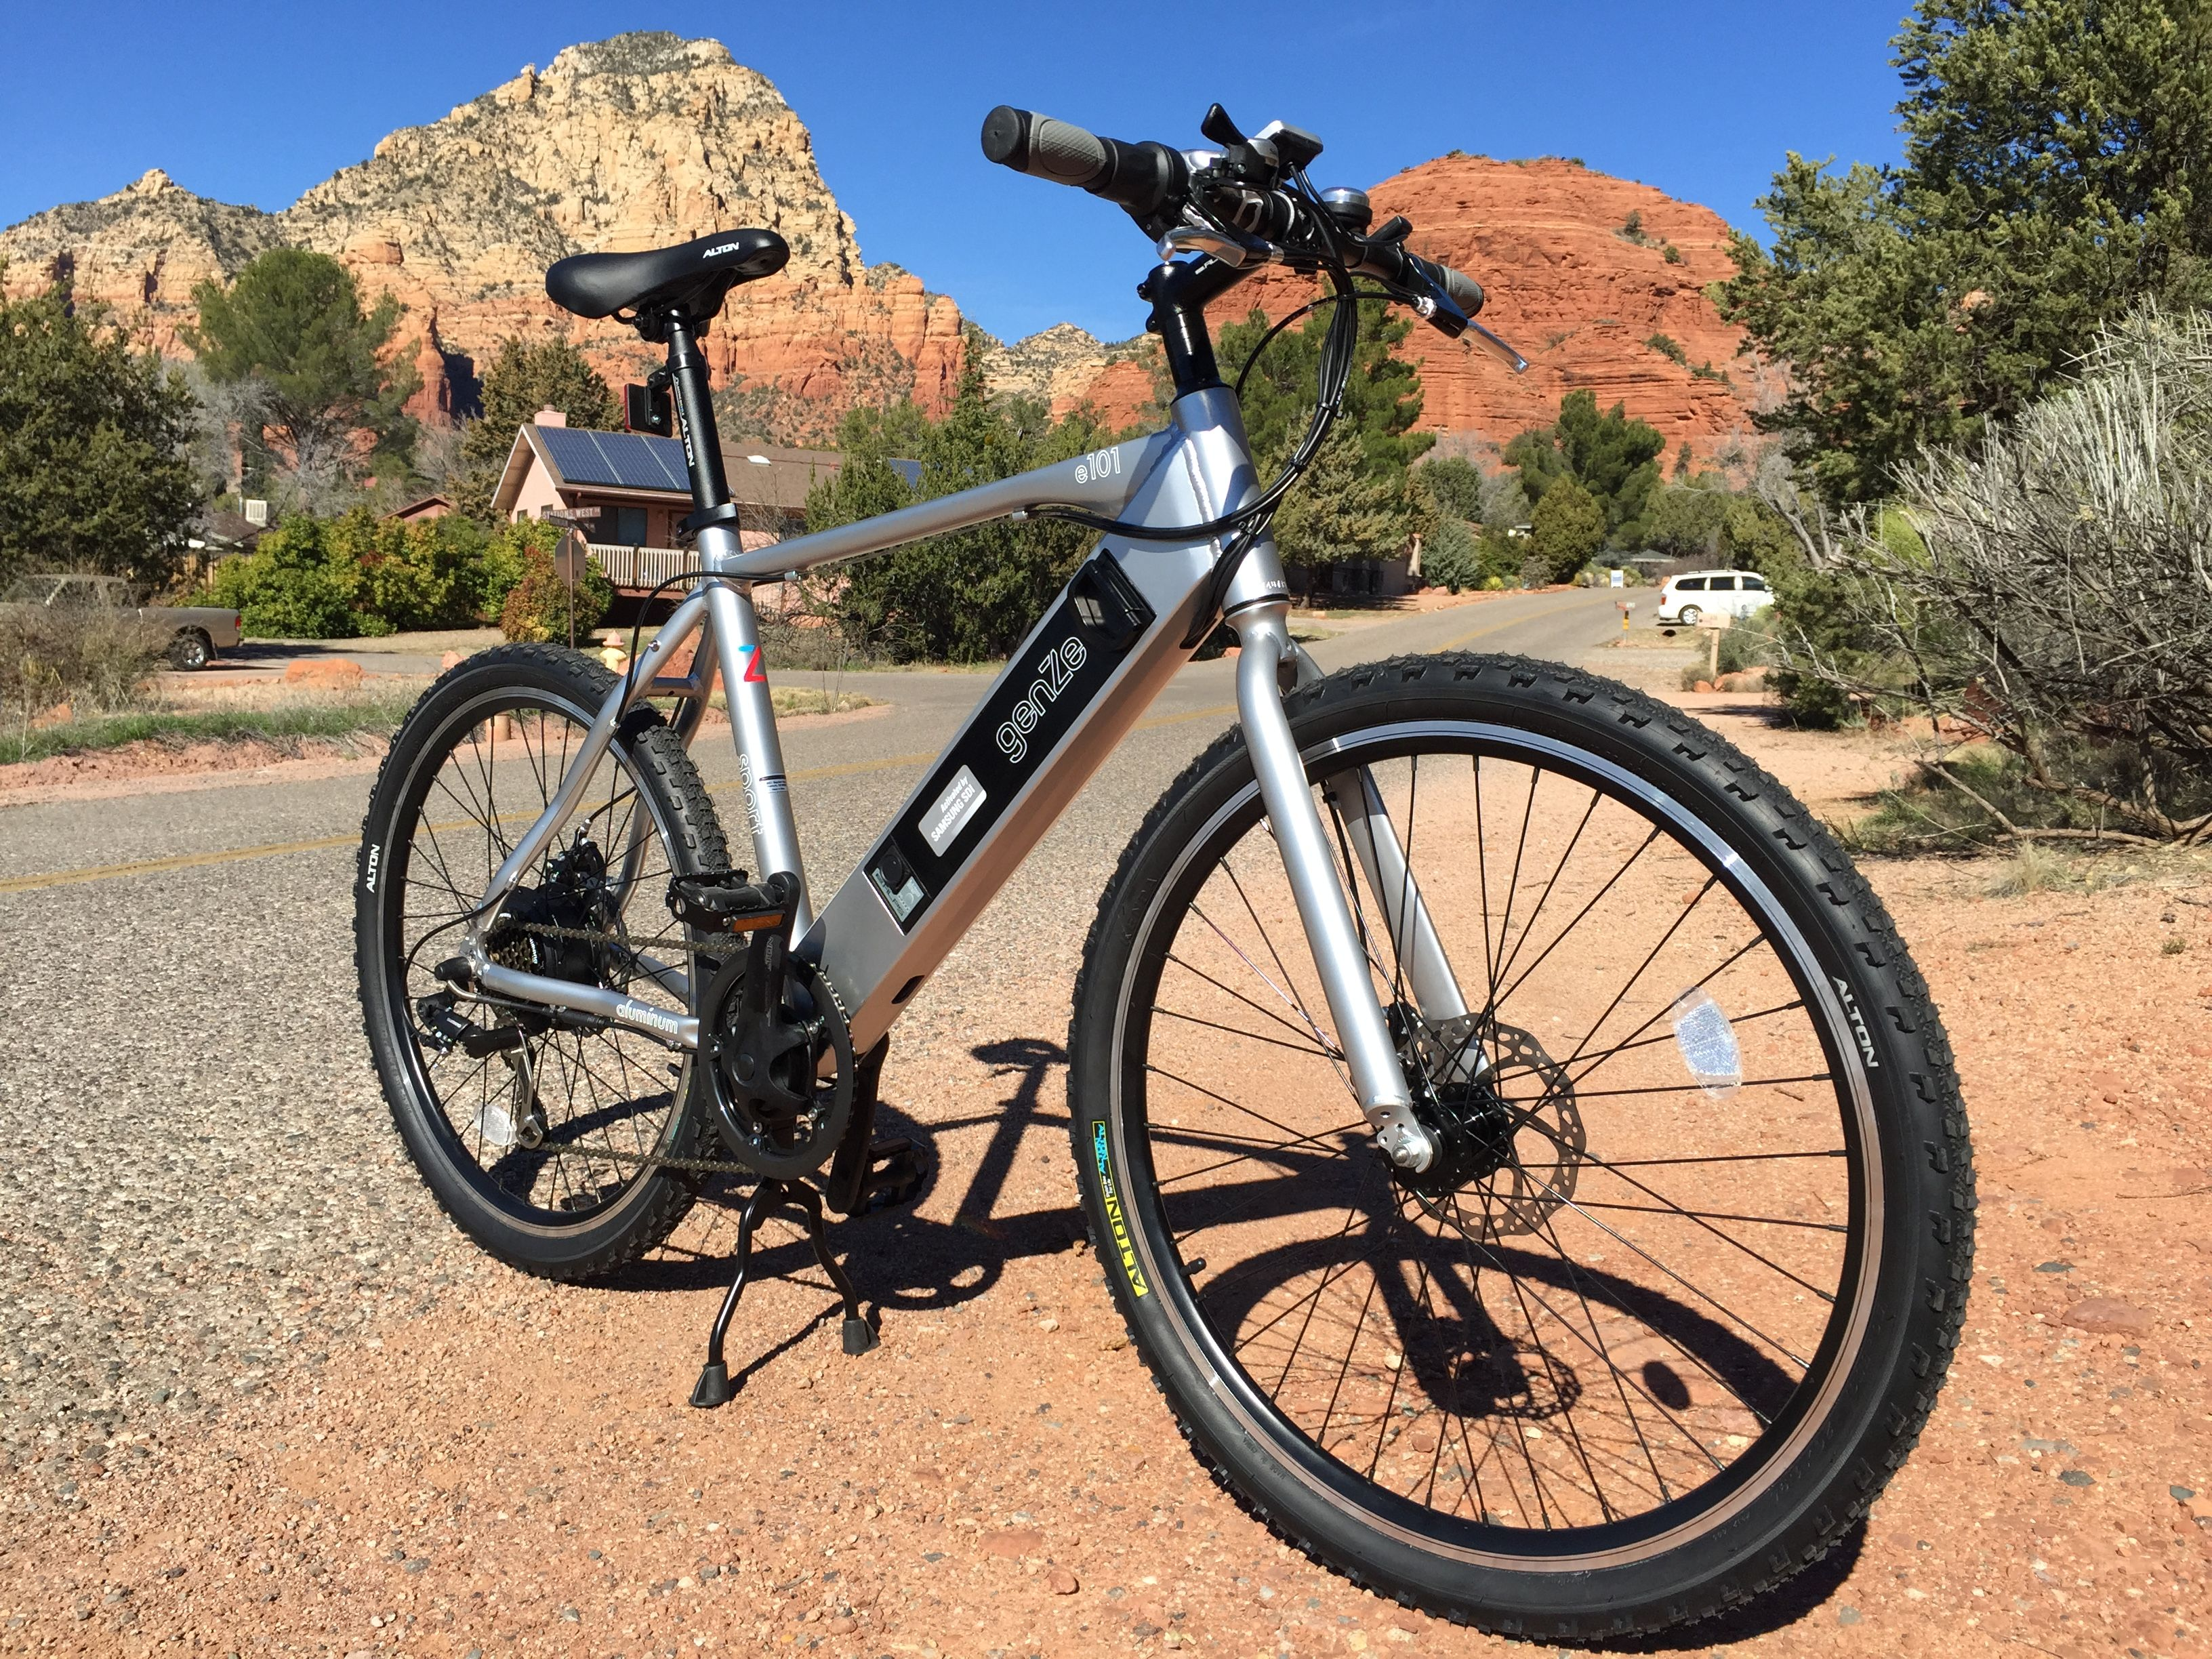 The Genze Sport E101 Electric Bike Is Next Up For Testing And